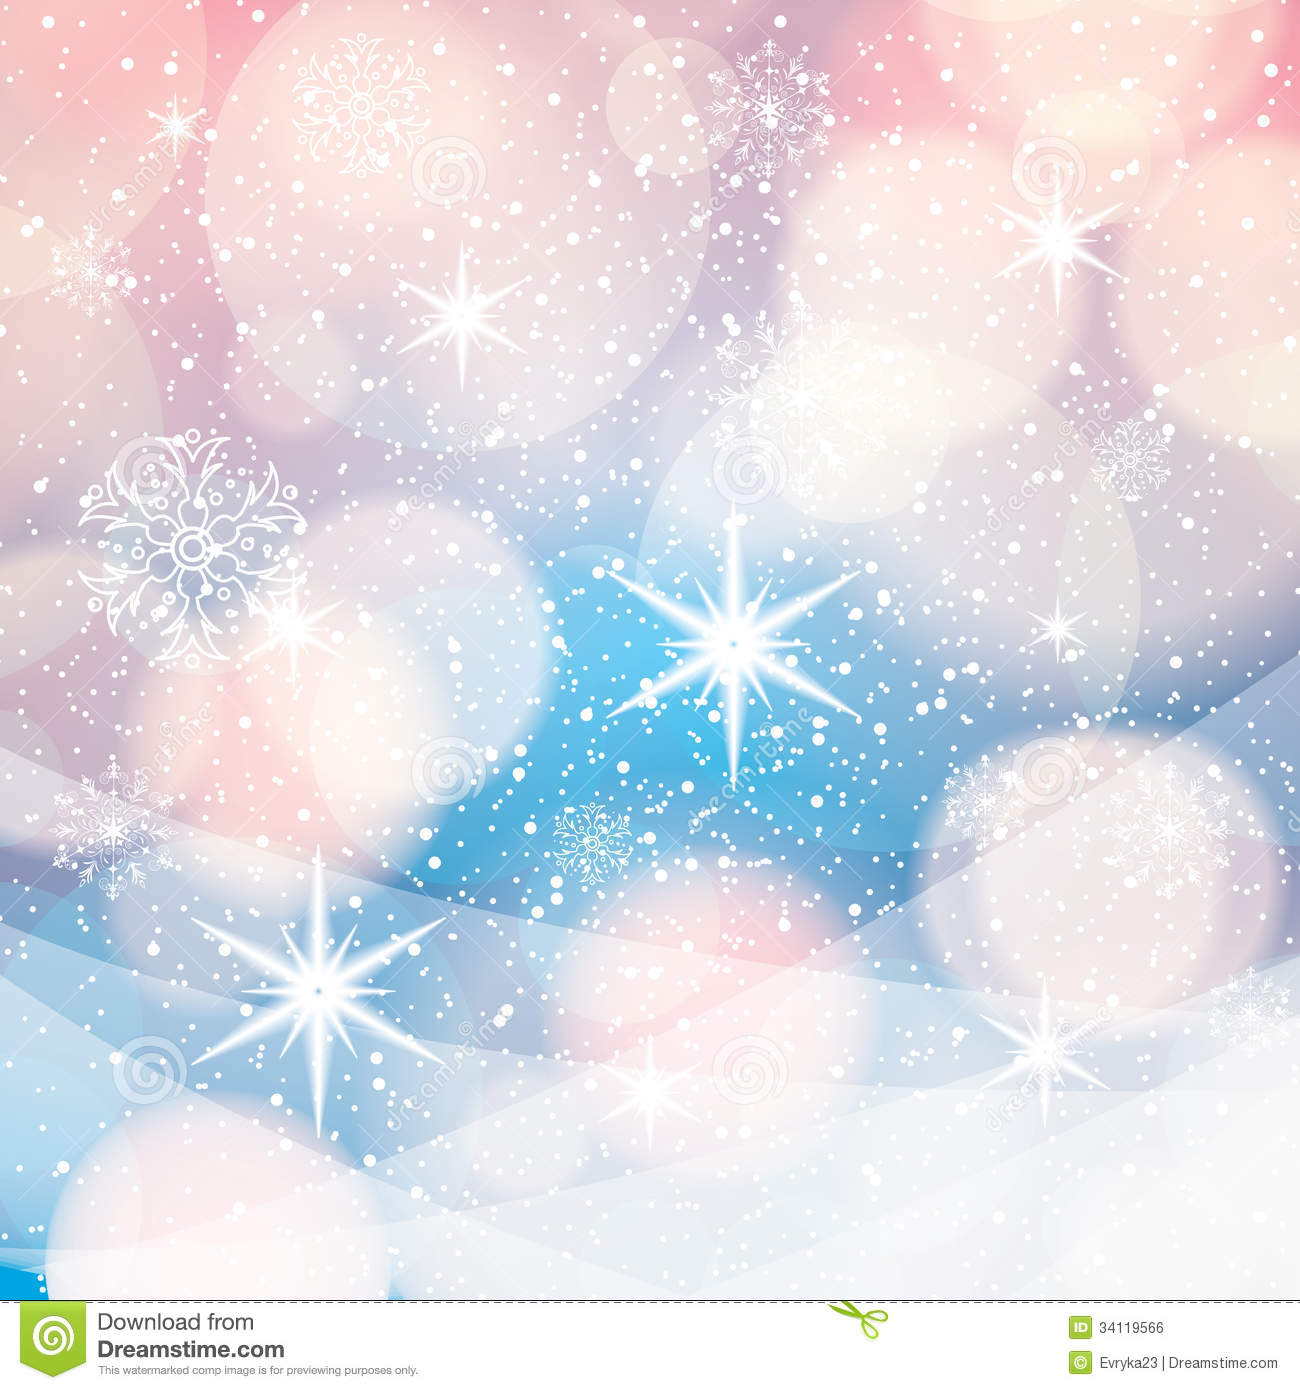 abstract winter background free - photo #35